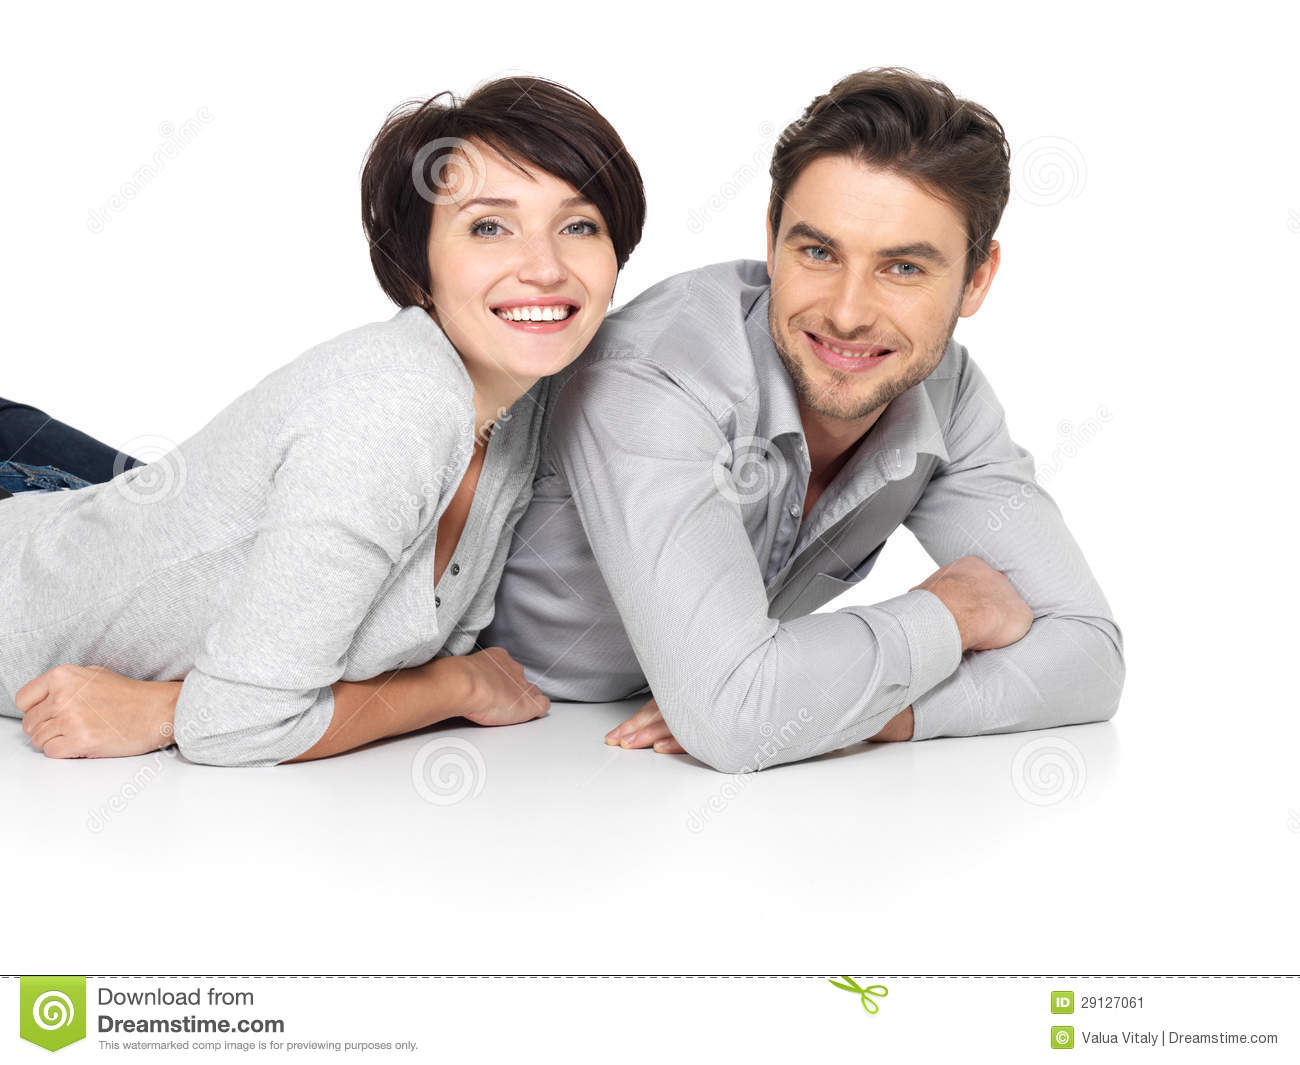 https://thumbs.dreamstime.com/z/portrait-happy-couple-isolated-white-29127061.jpg